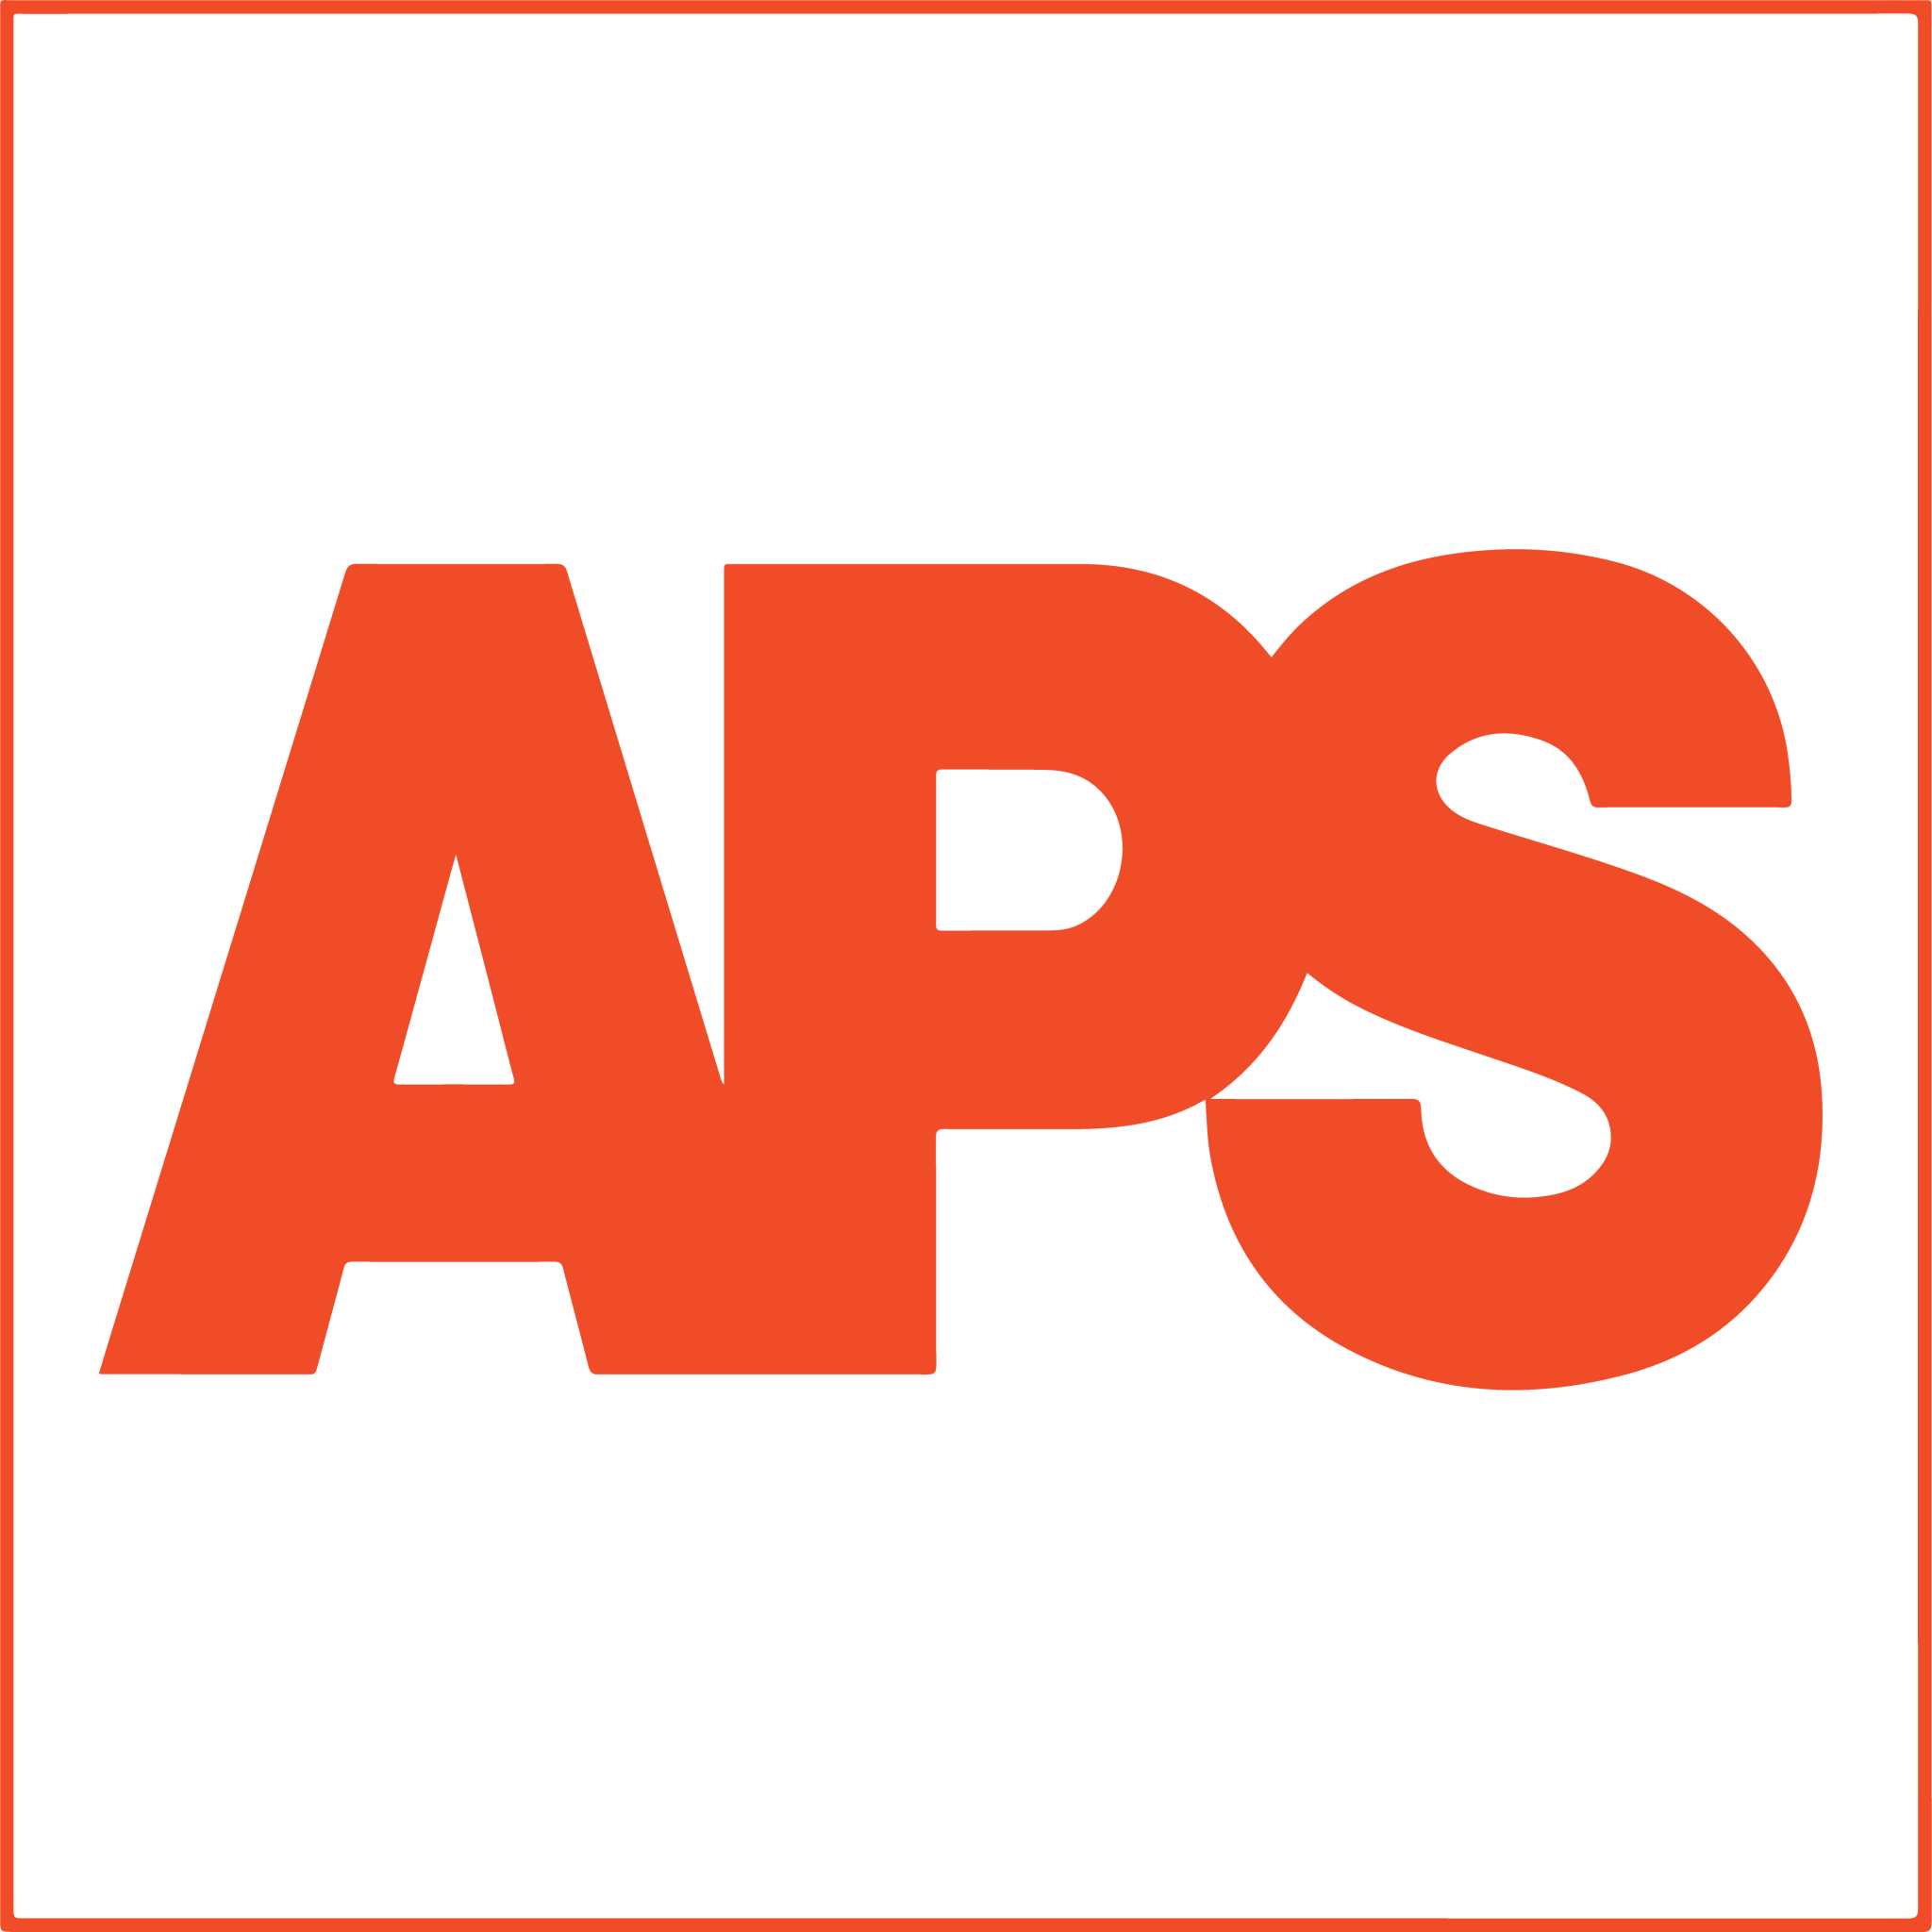 APS Abstracts